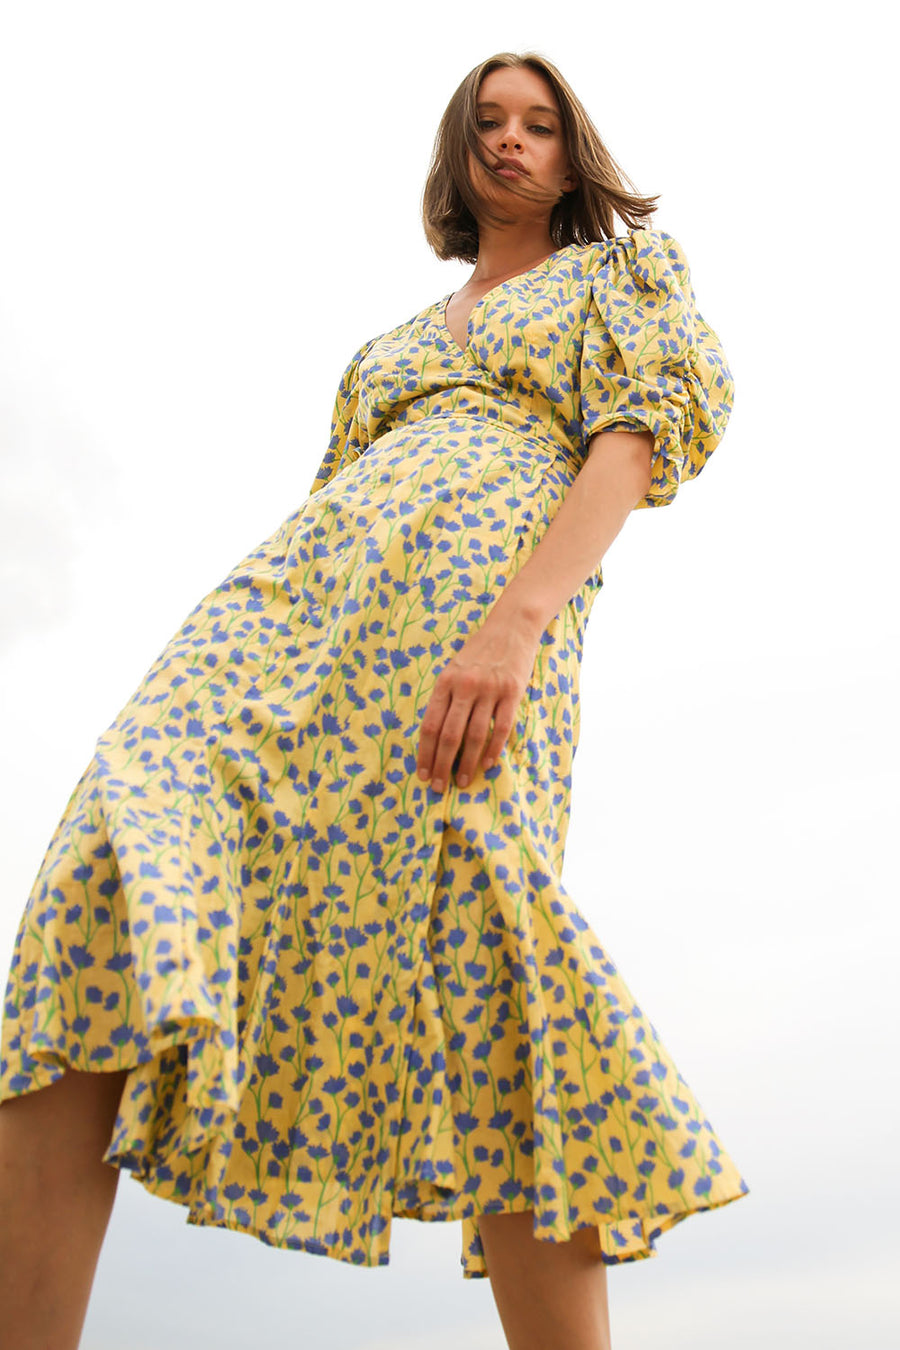 HALONA VINE BUTTER WRAP DRESS